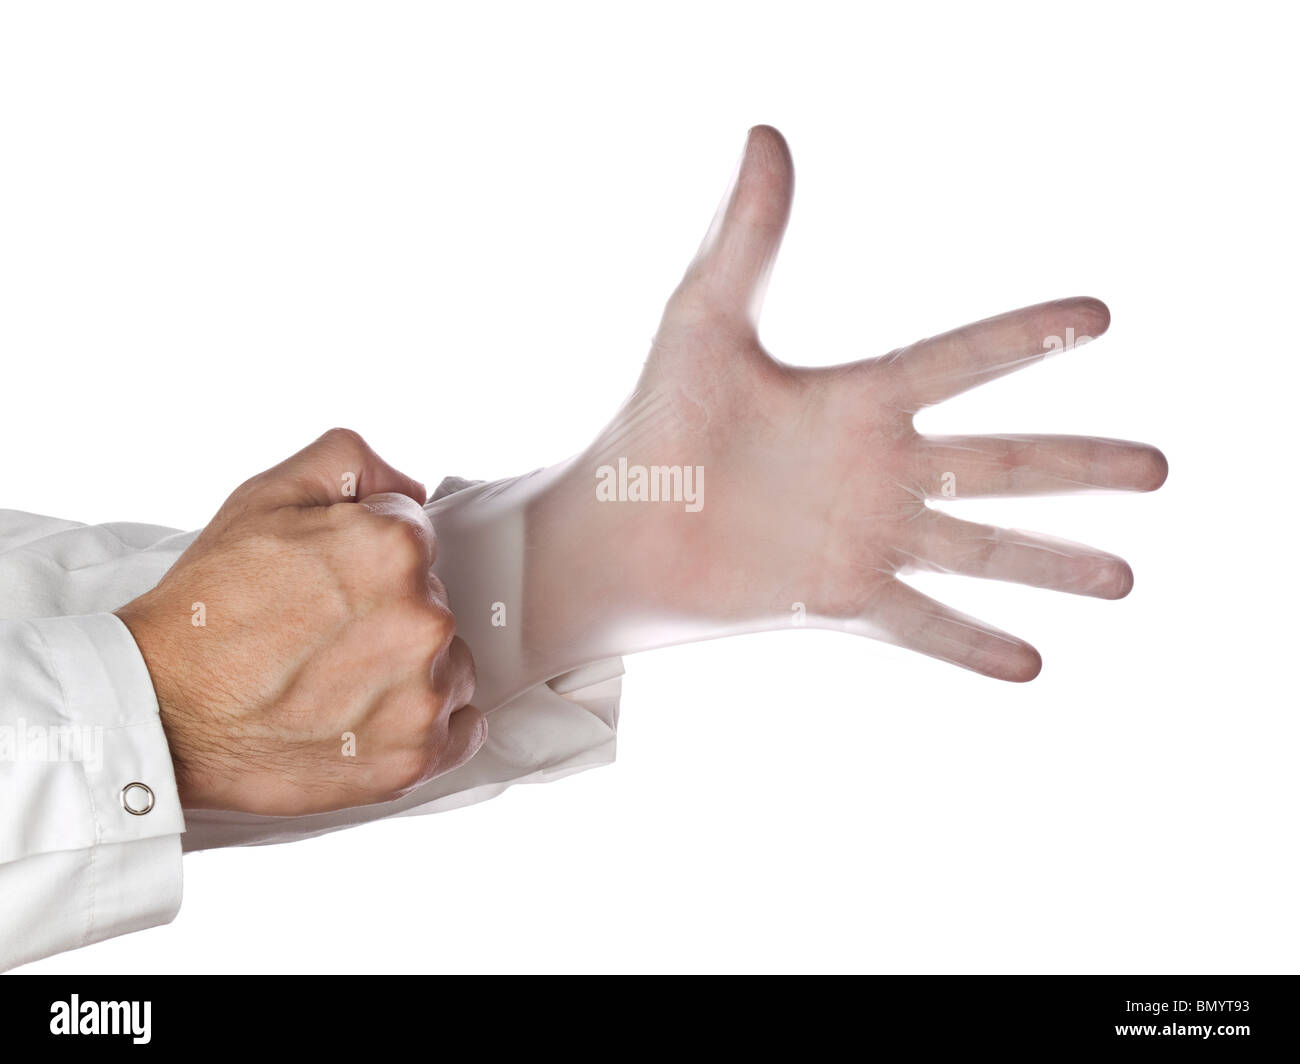 A doctor is putting on surgical latex gloves. - Stock Image